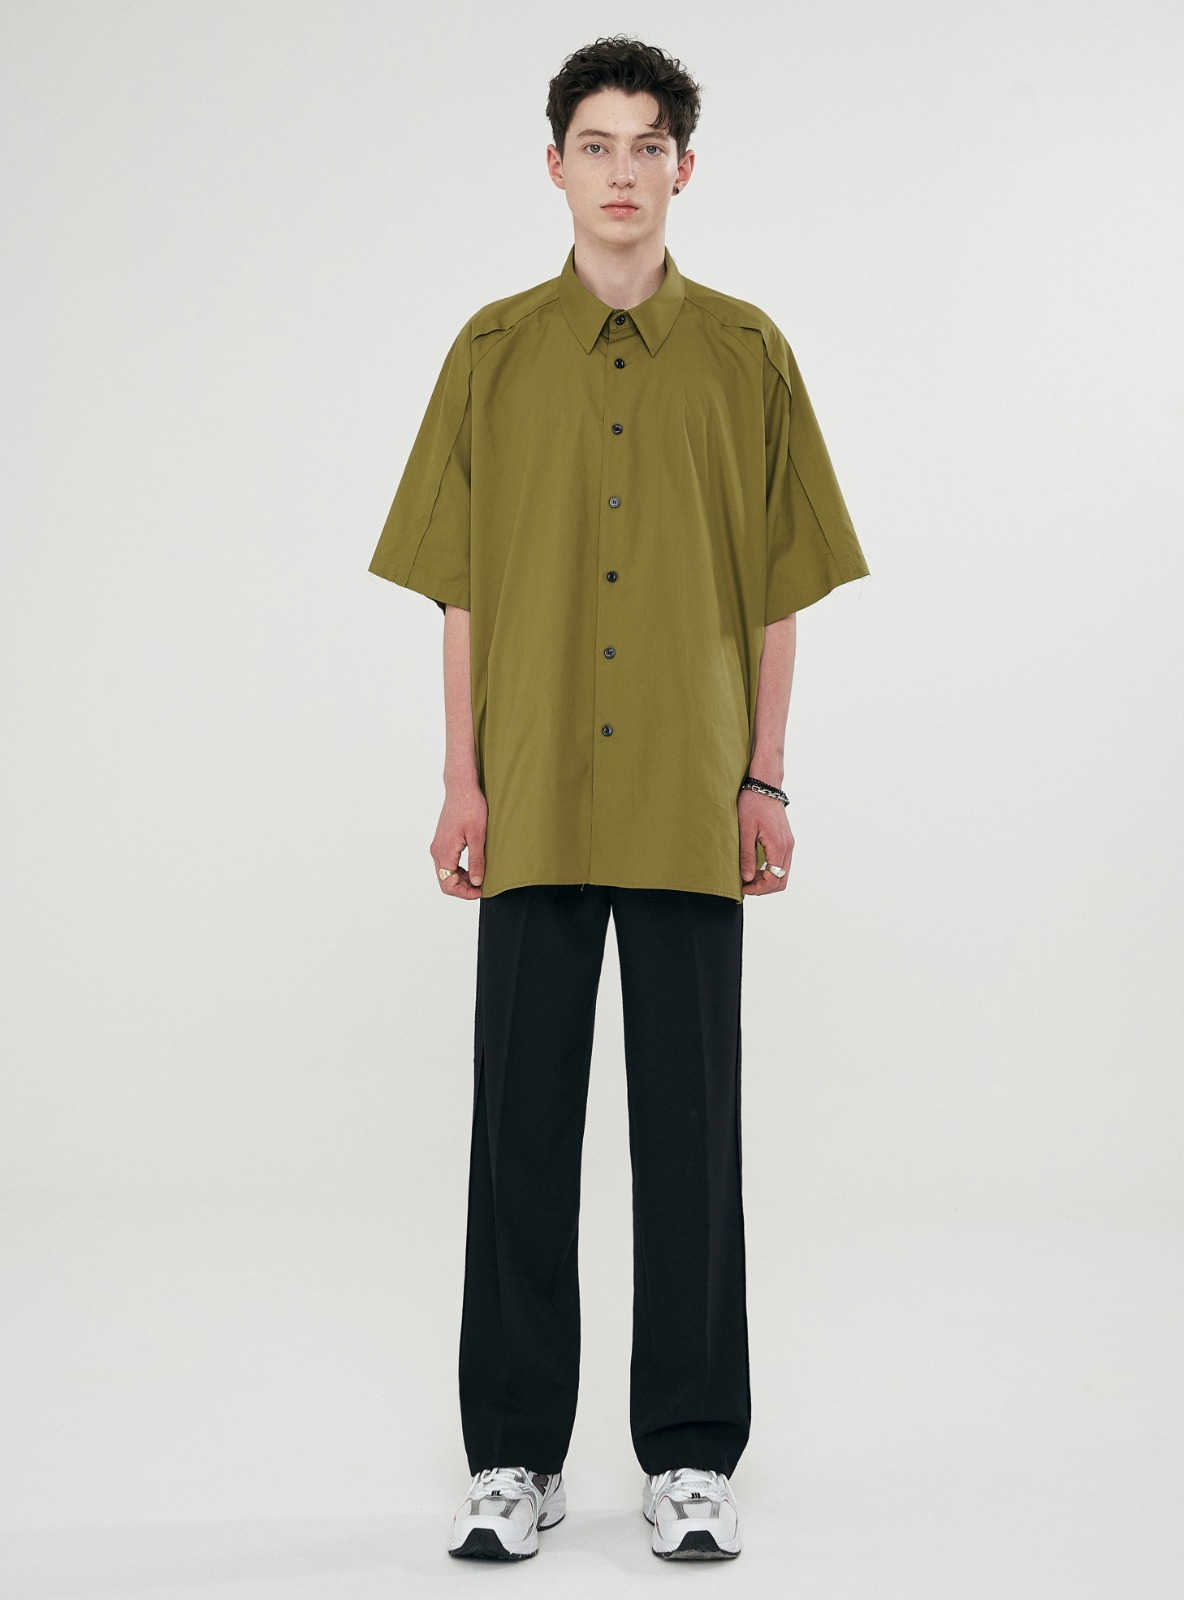 RAW EDGE AVANTGARDE SHIRT KHAKI